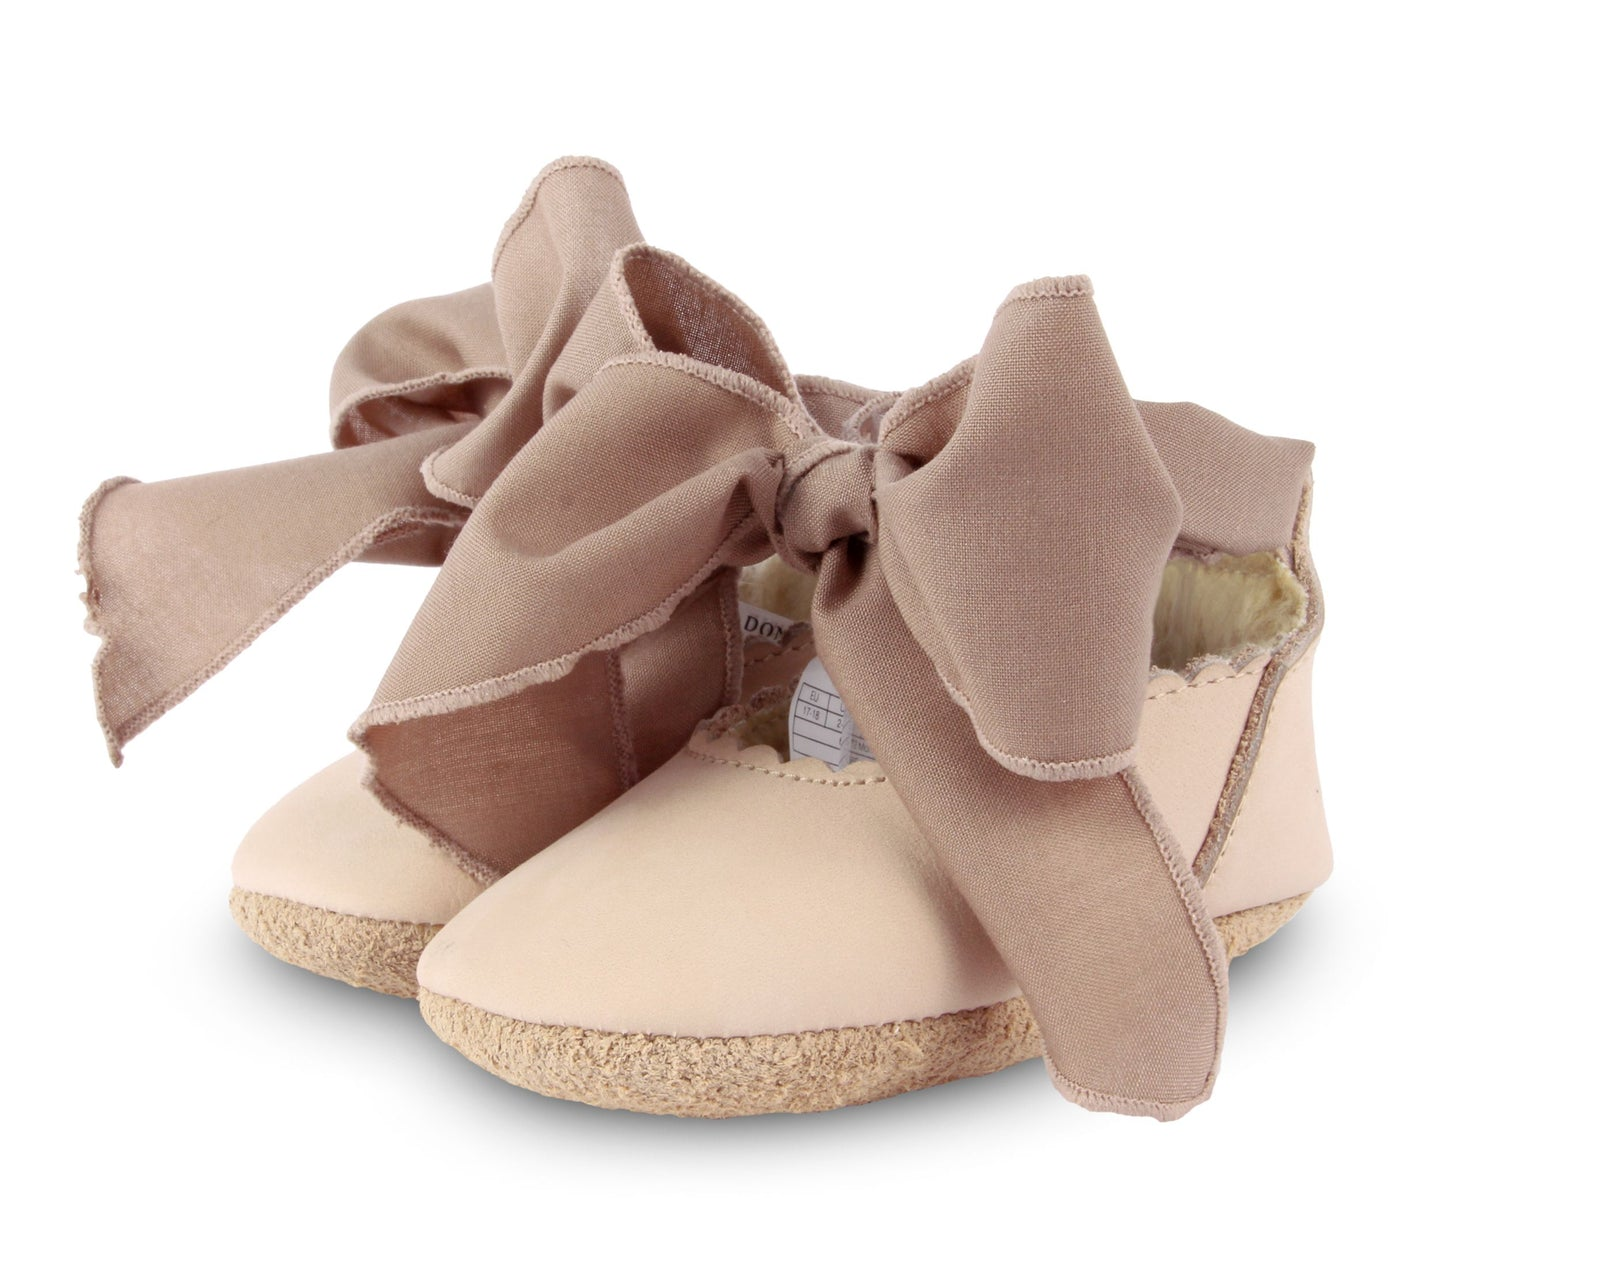 Lieve Lining Flats - Powder Nubuck & Mocha Cotton